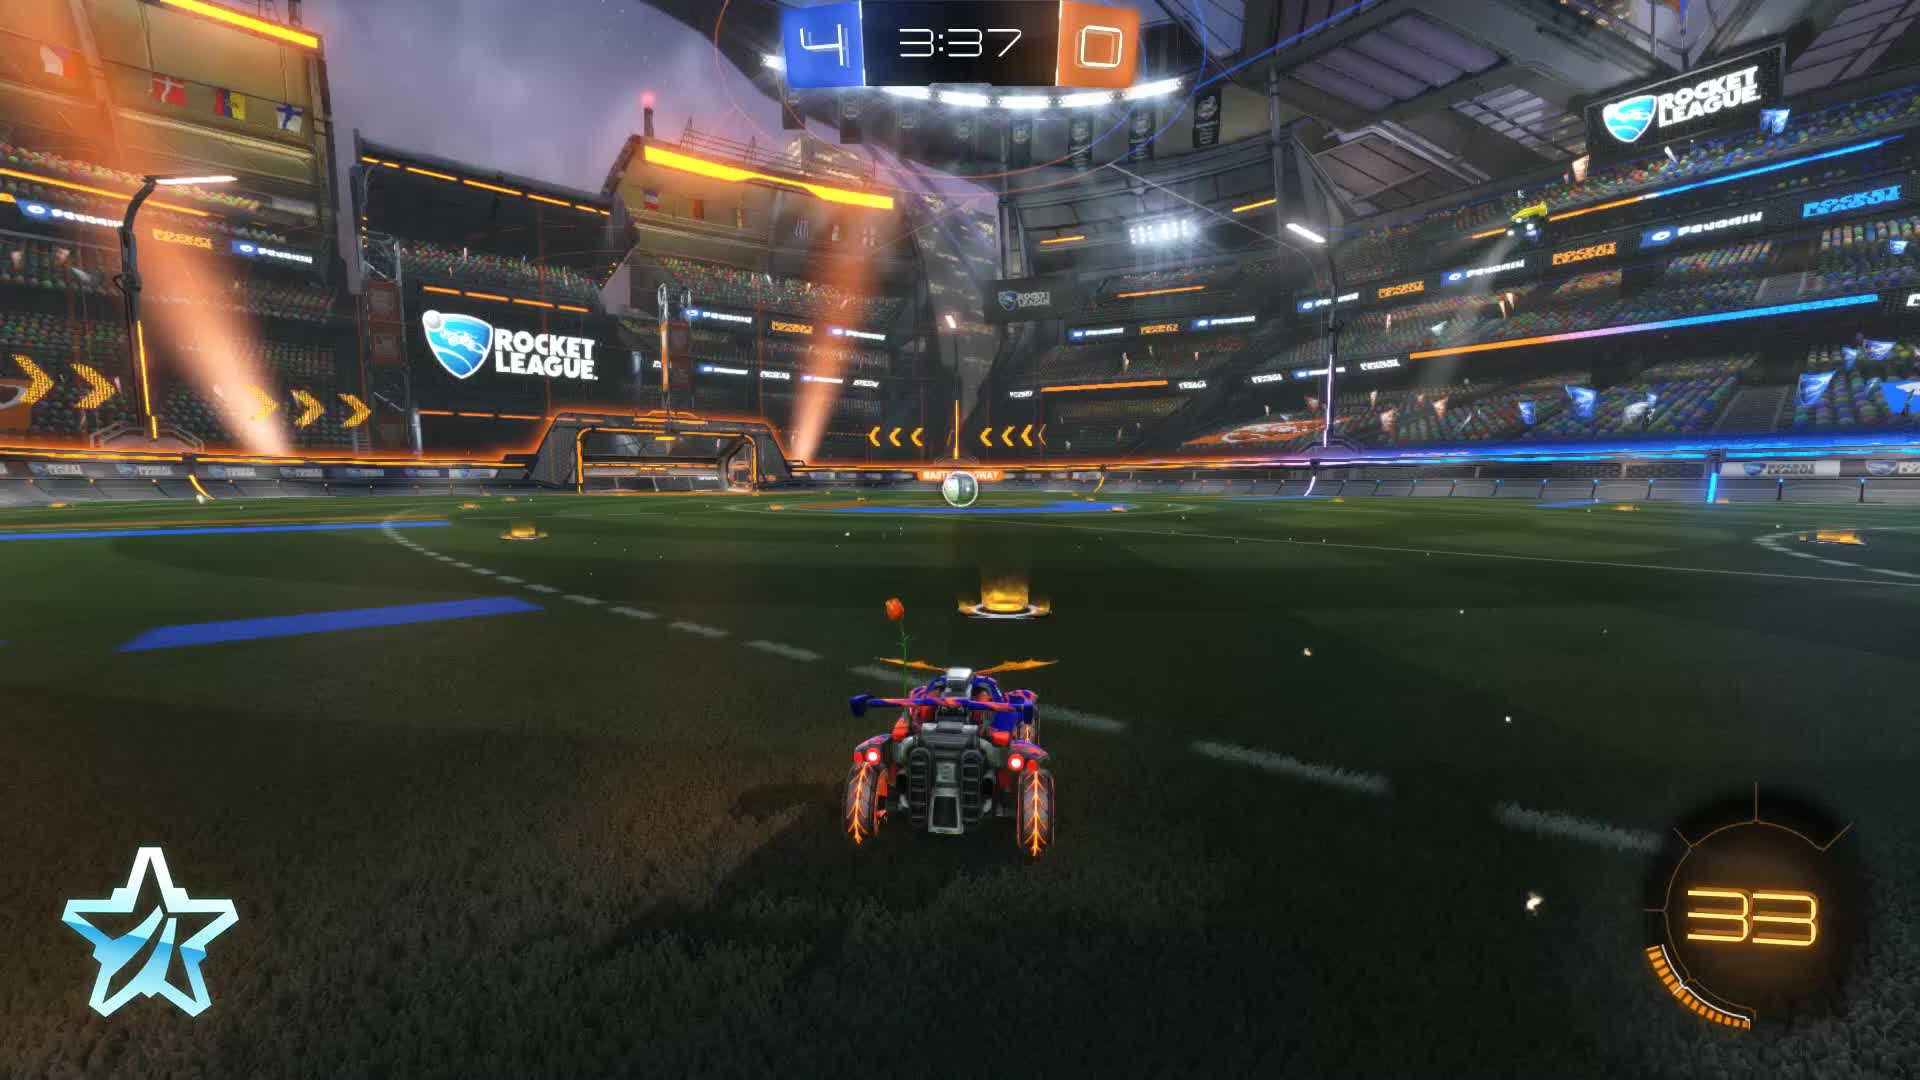 Gif Your Game, GifYourGame, Goal, ItIsK3vin, Rocket League, RocketLeague, 26th Ceiling Shot GIFs